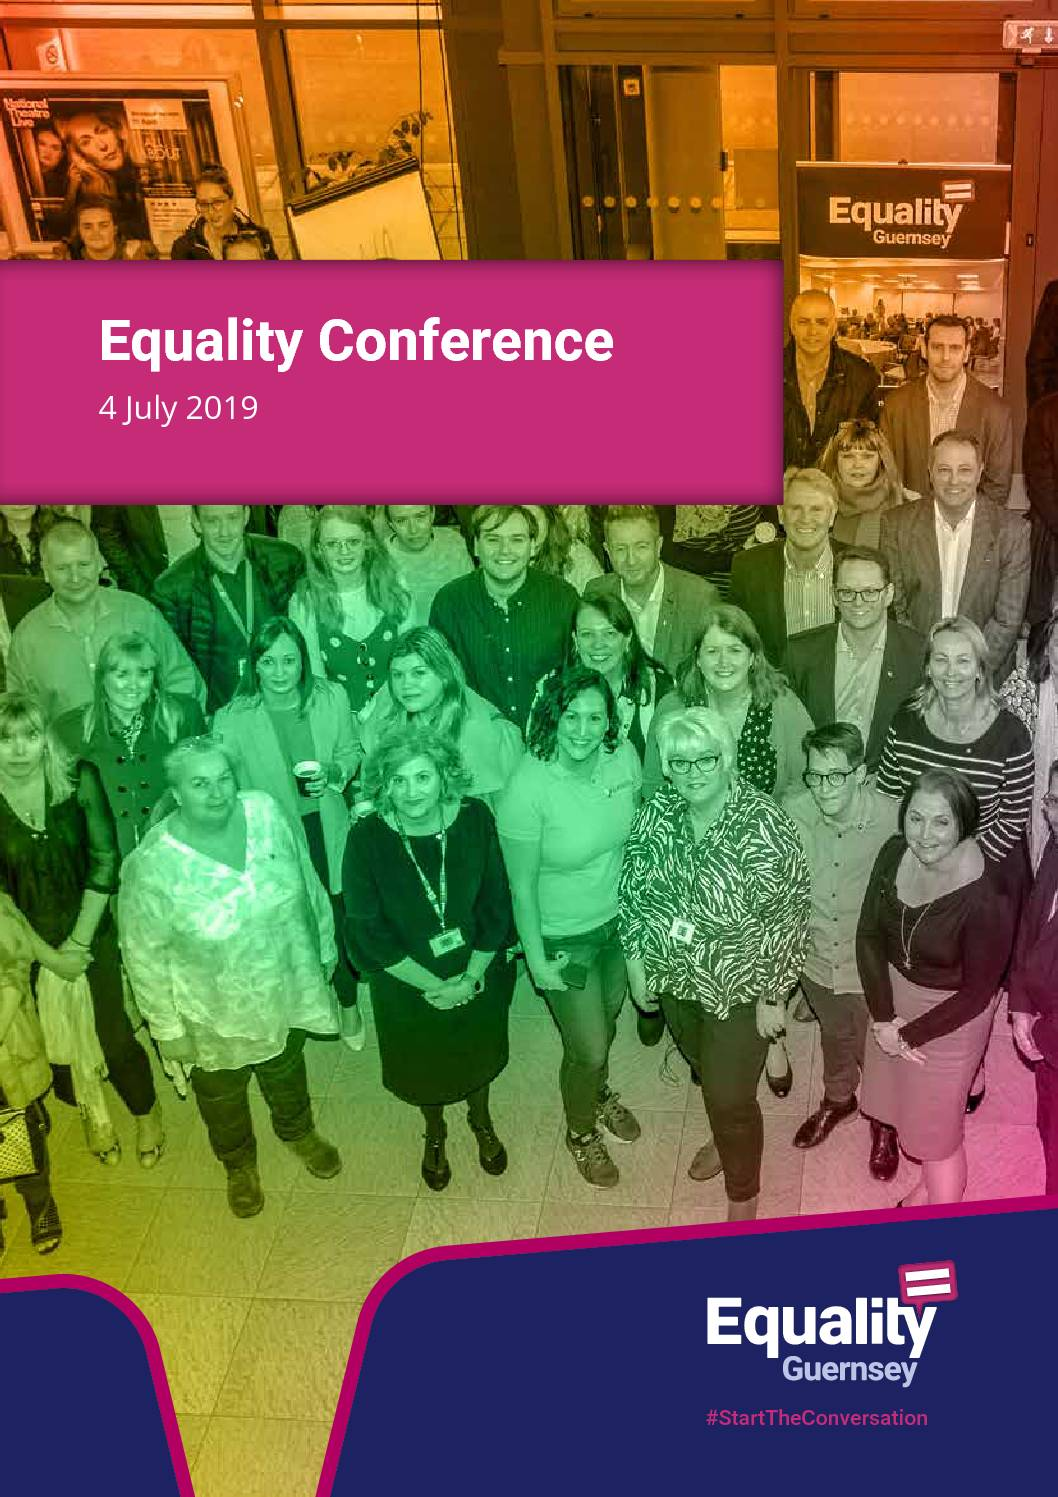 Equality Conference Resources - Equality Guernsey